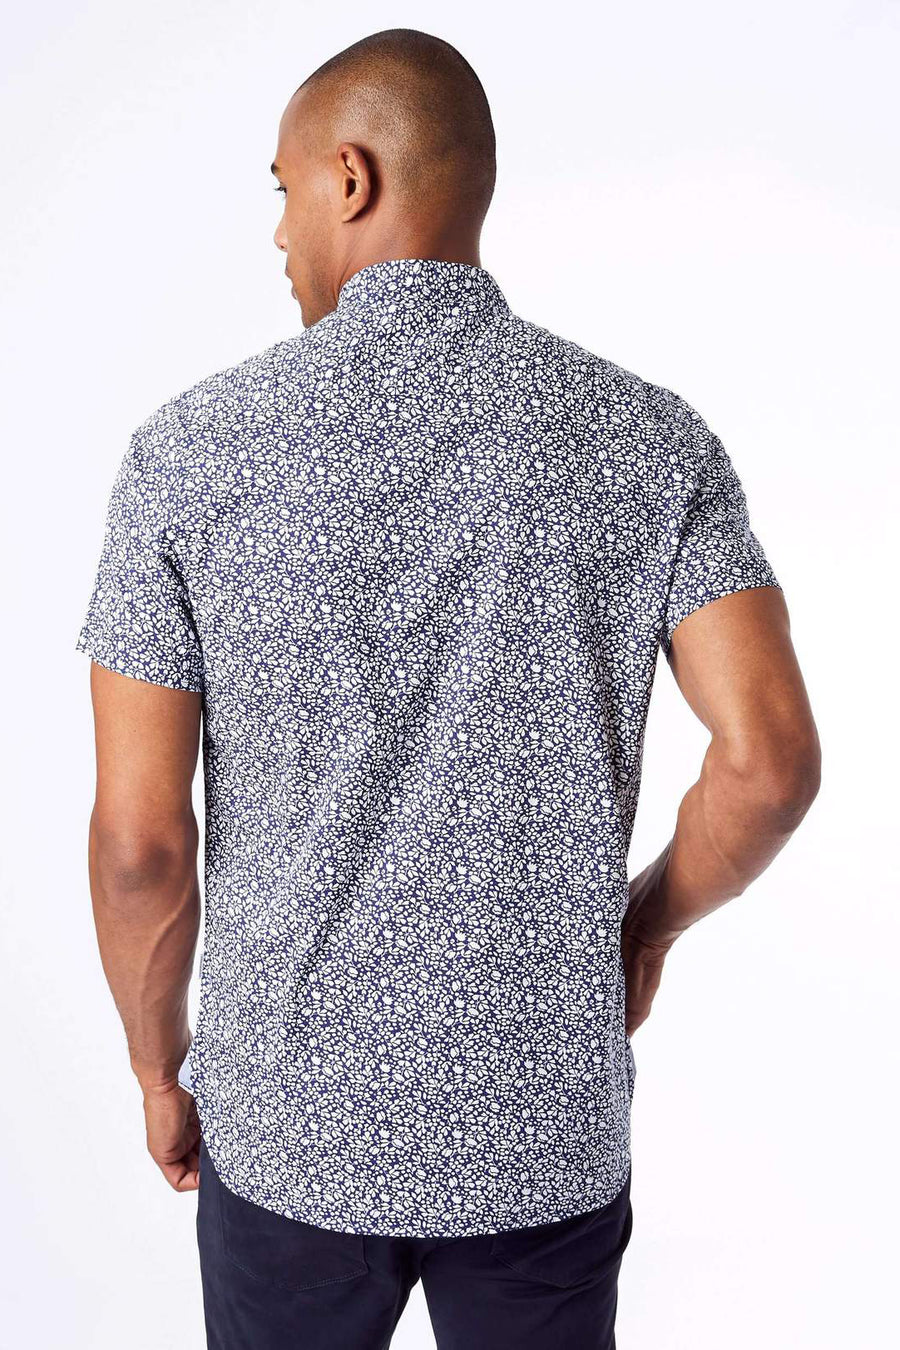 Renegade Parade Short Sleeve Shirt - Navy